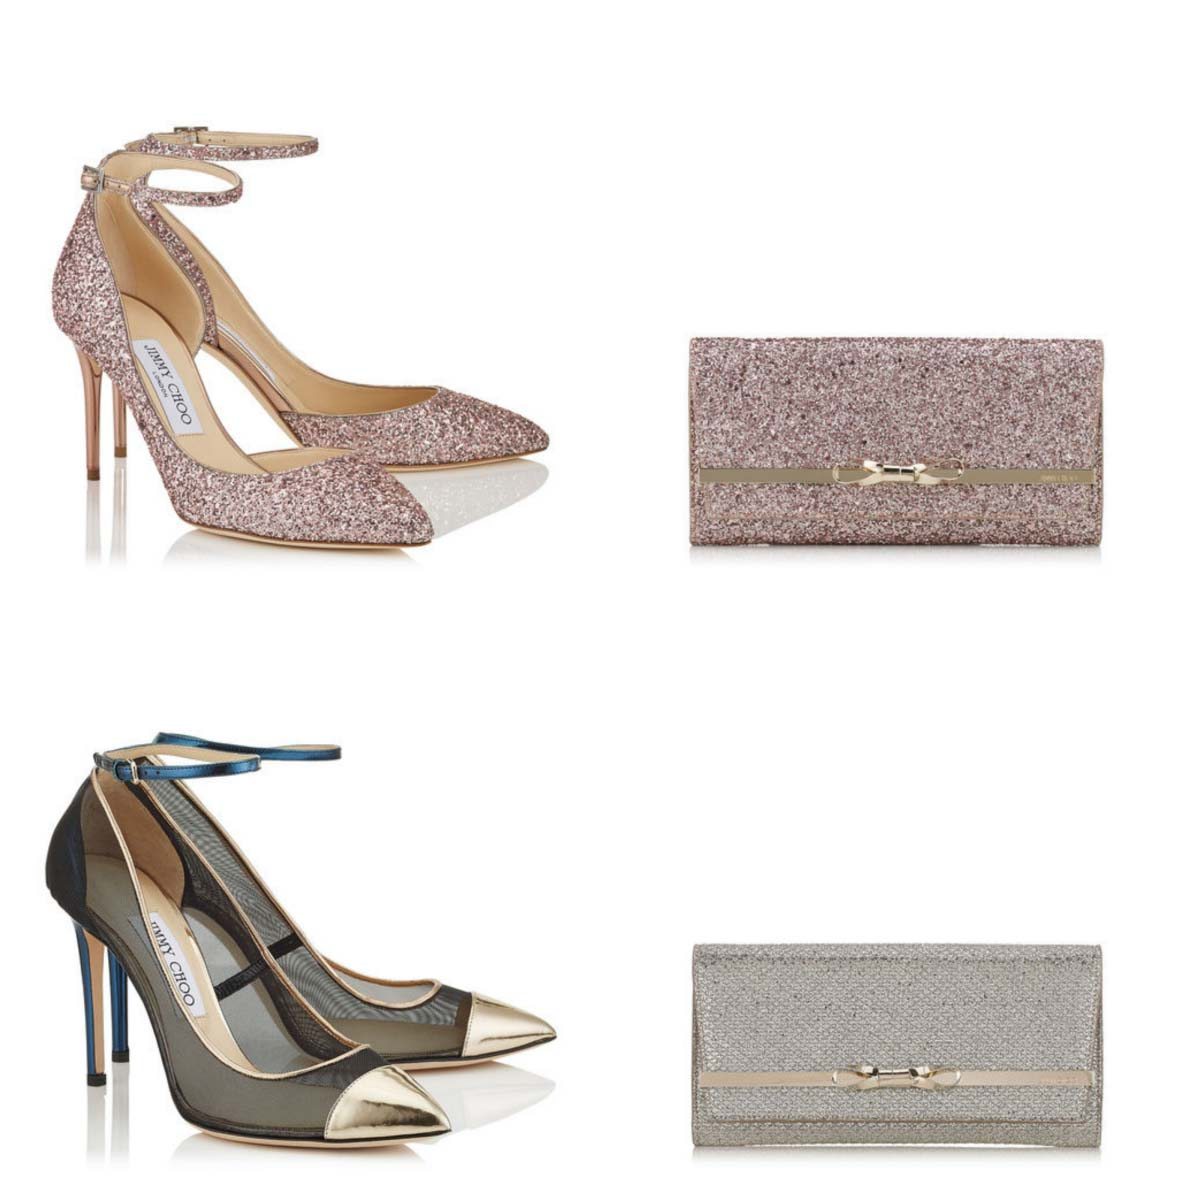 Stylish Jimmy Choo Formal Footwear Collection